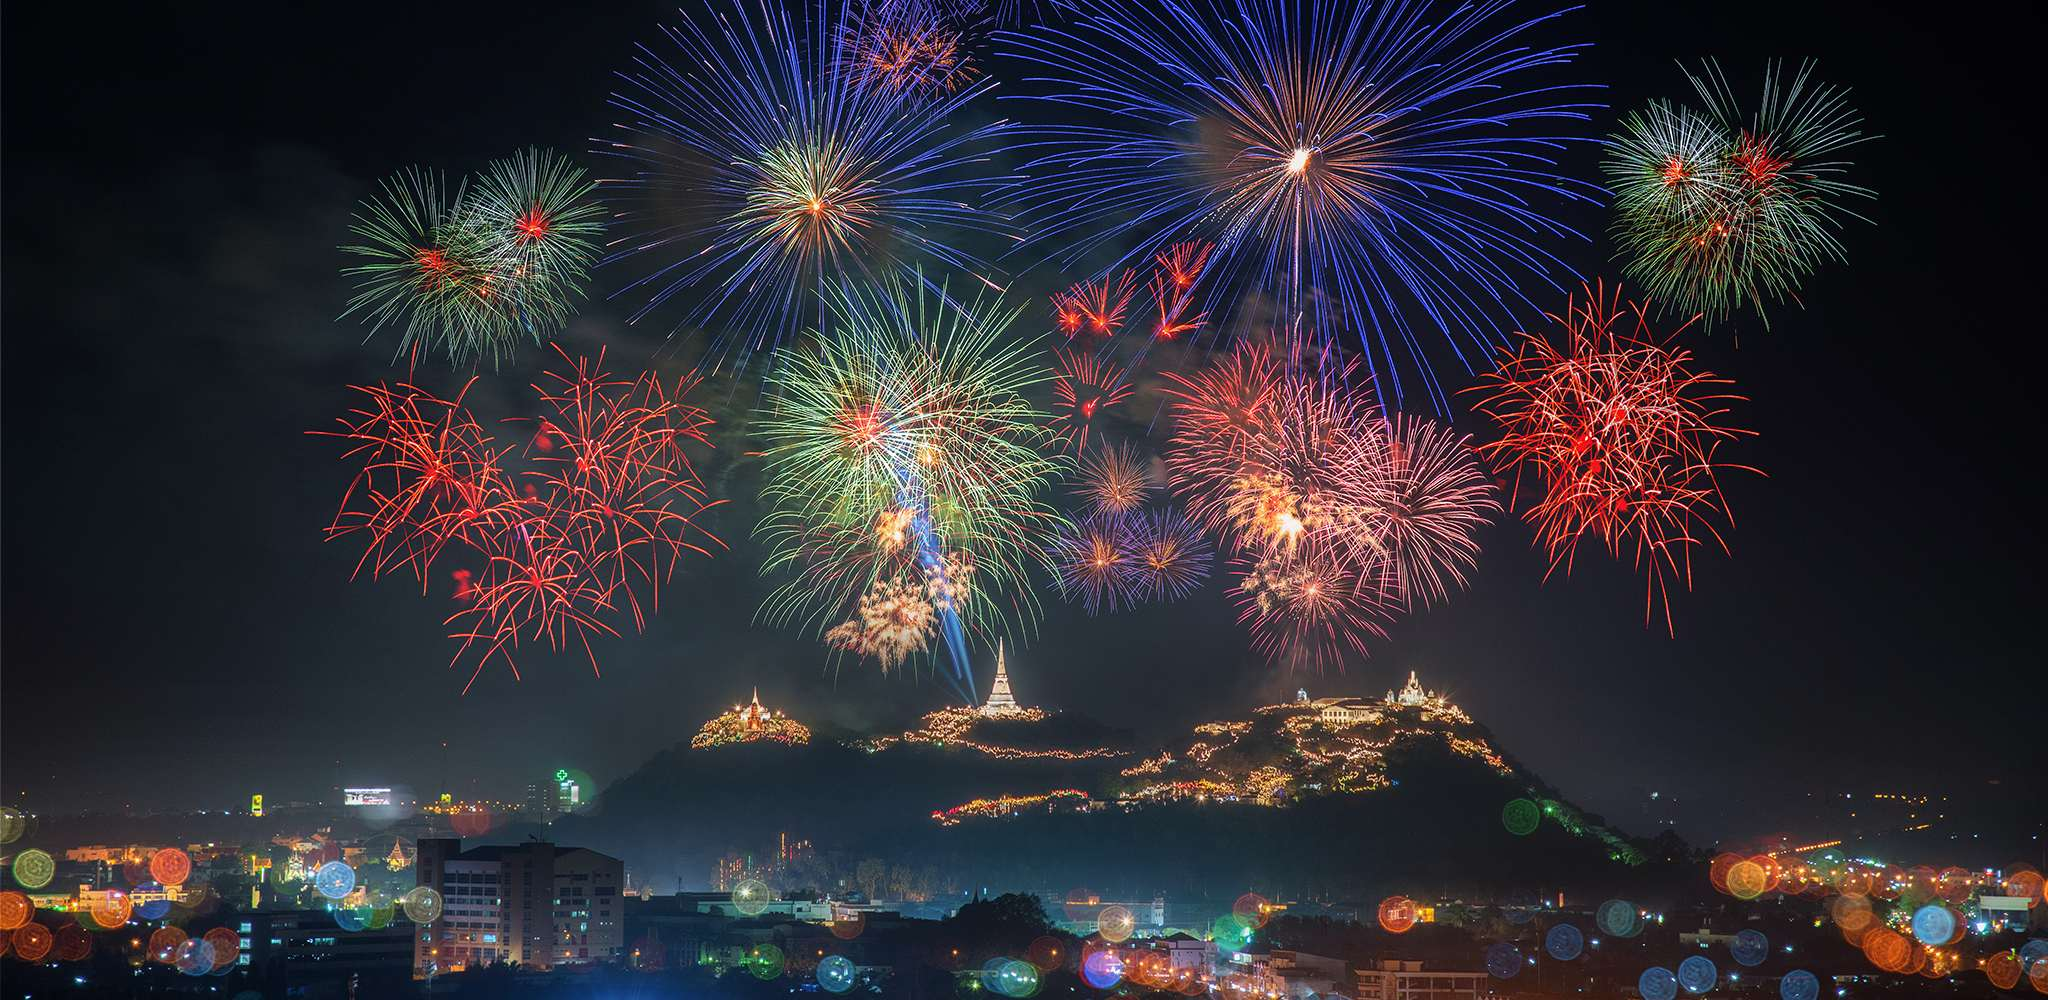 Kao Wang fireworks, the annual festival of Phetchaburi province in Thailand